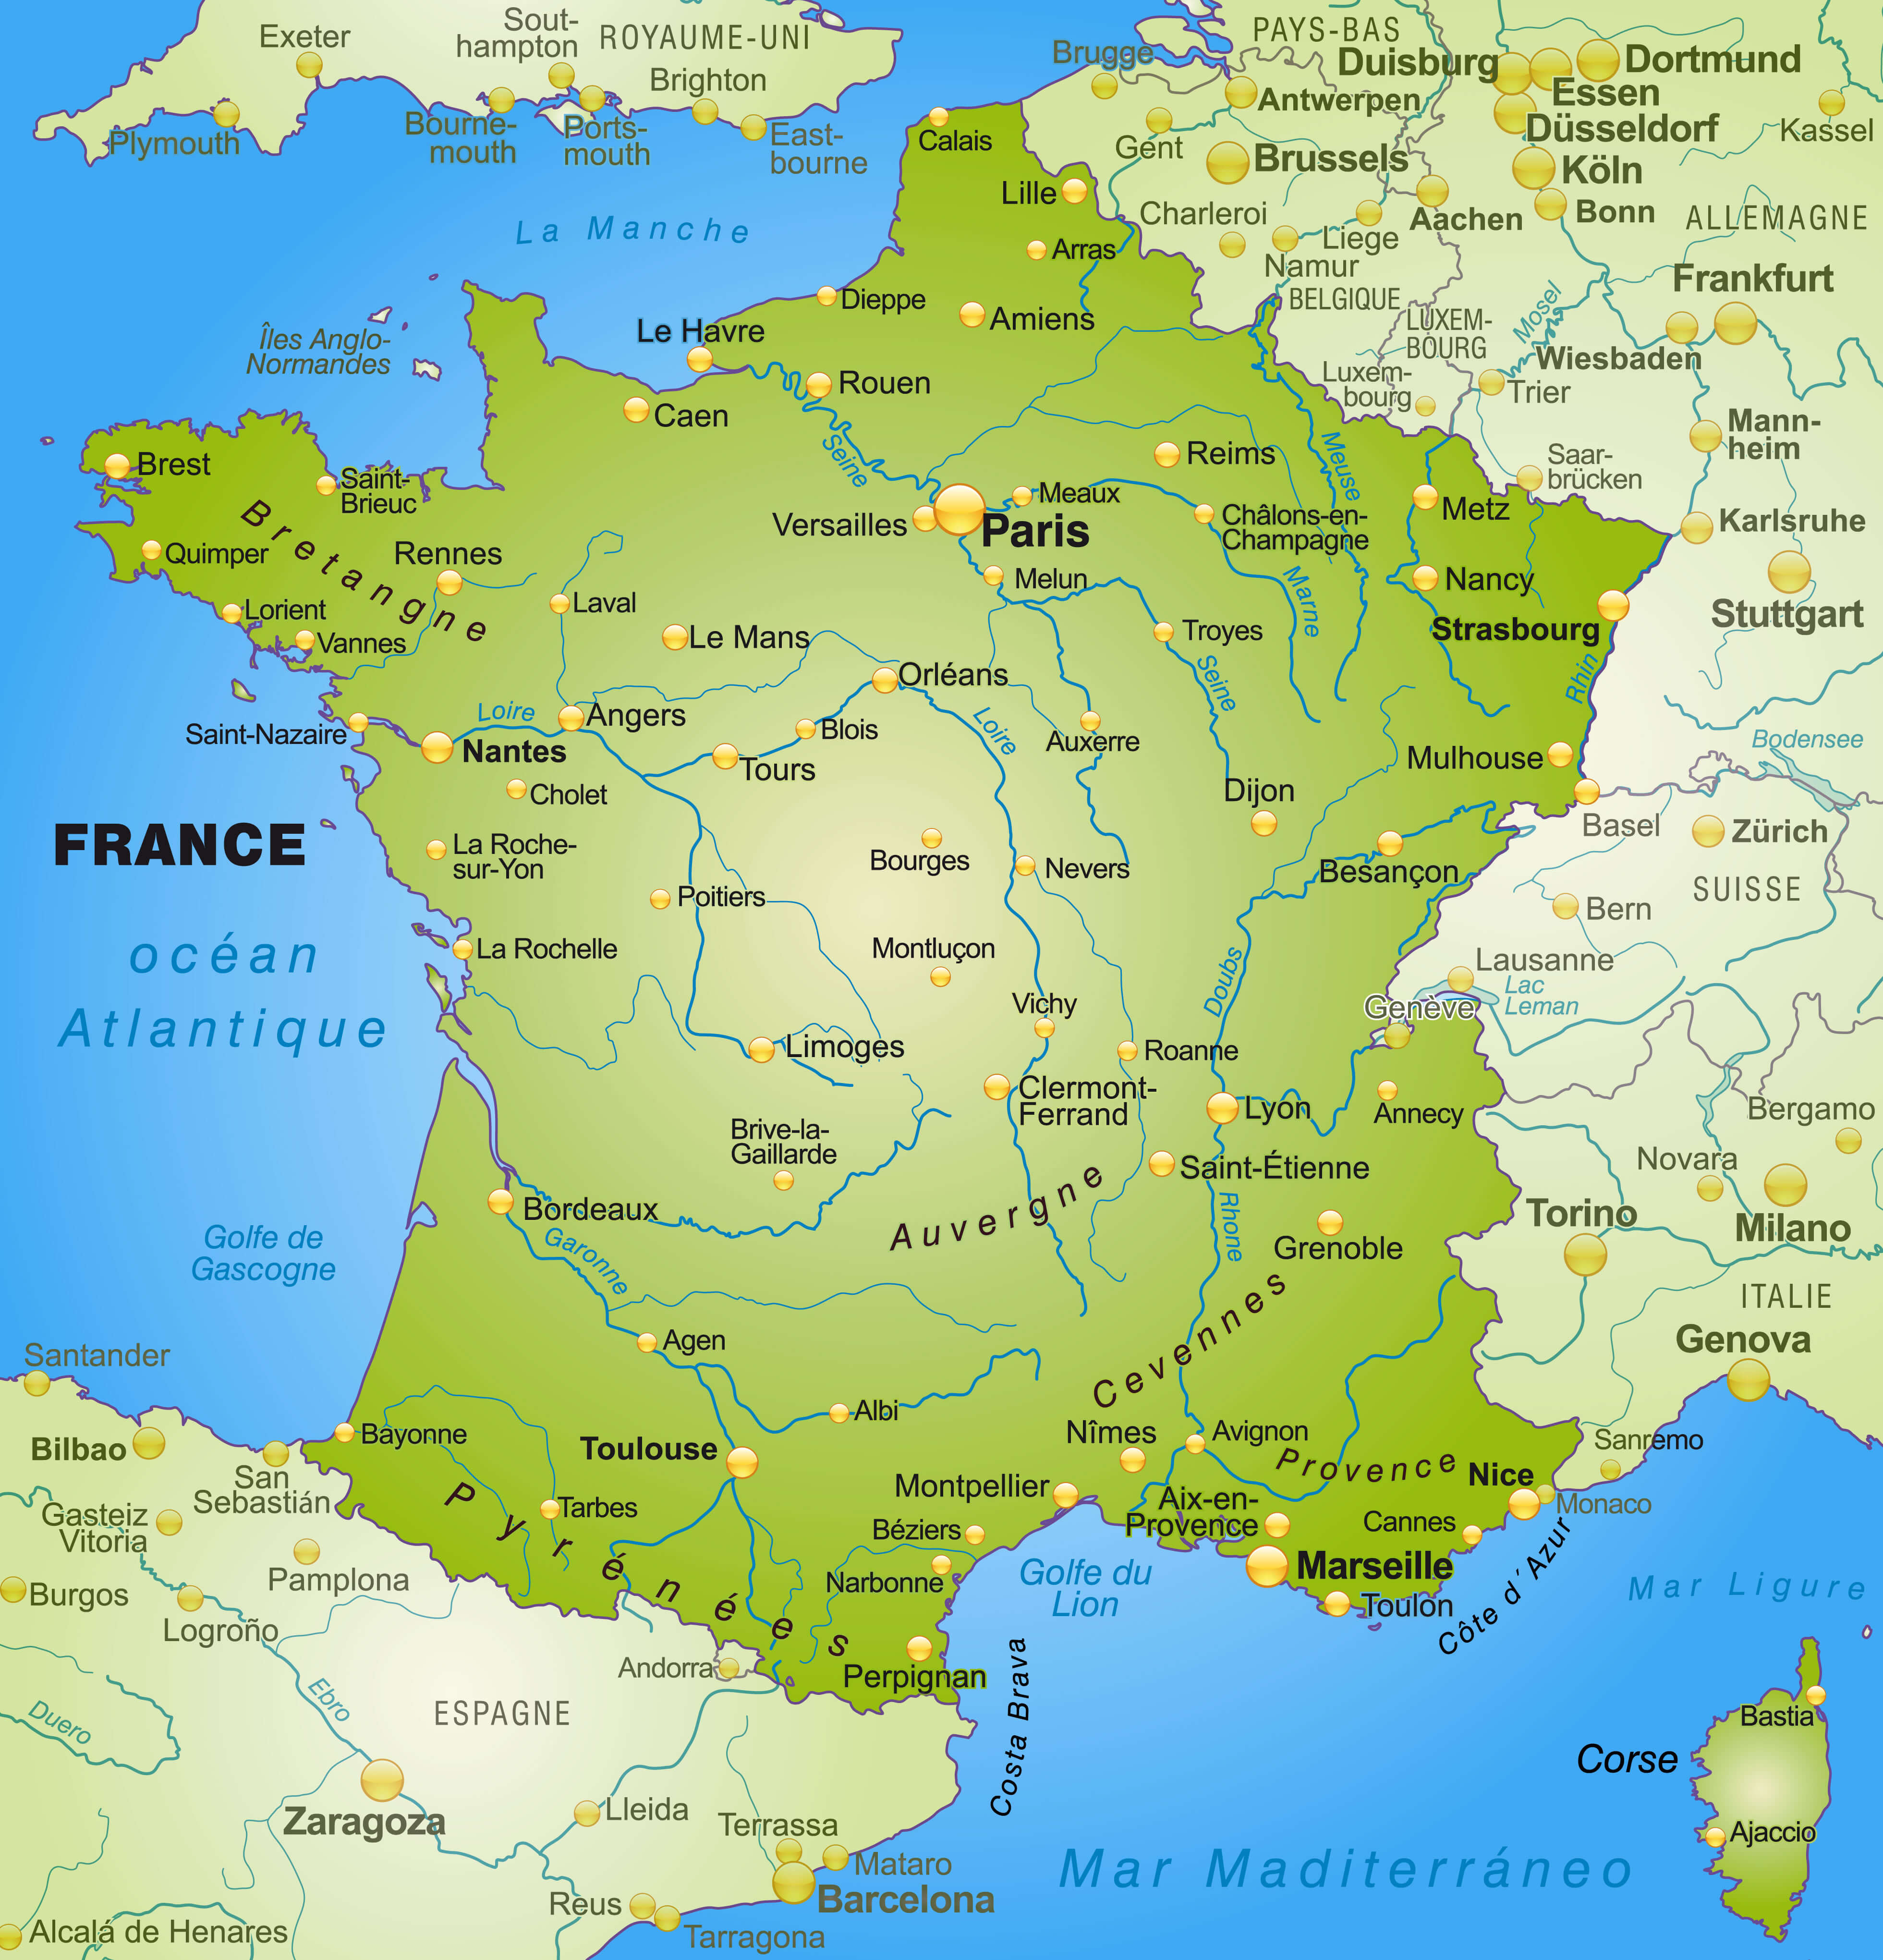 Map of France with Major Cities and Rivers